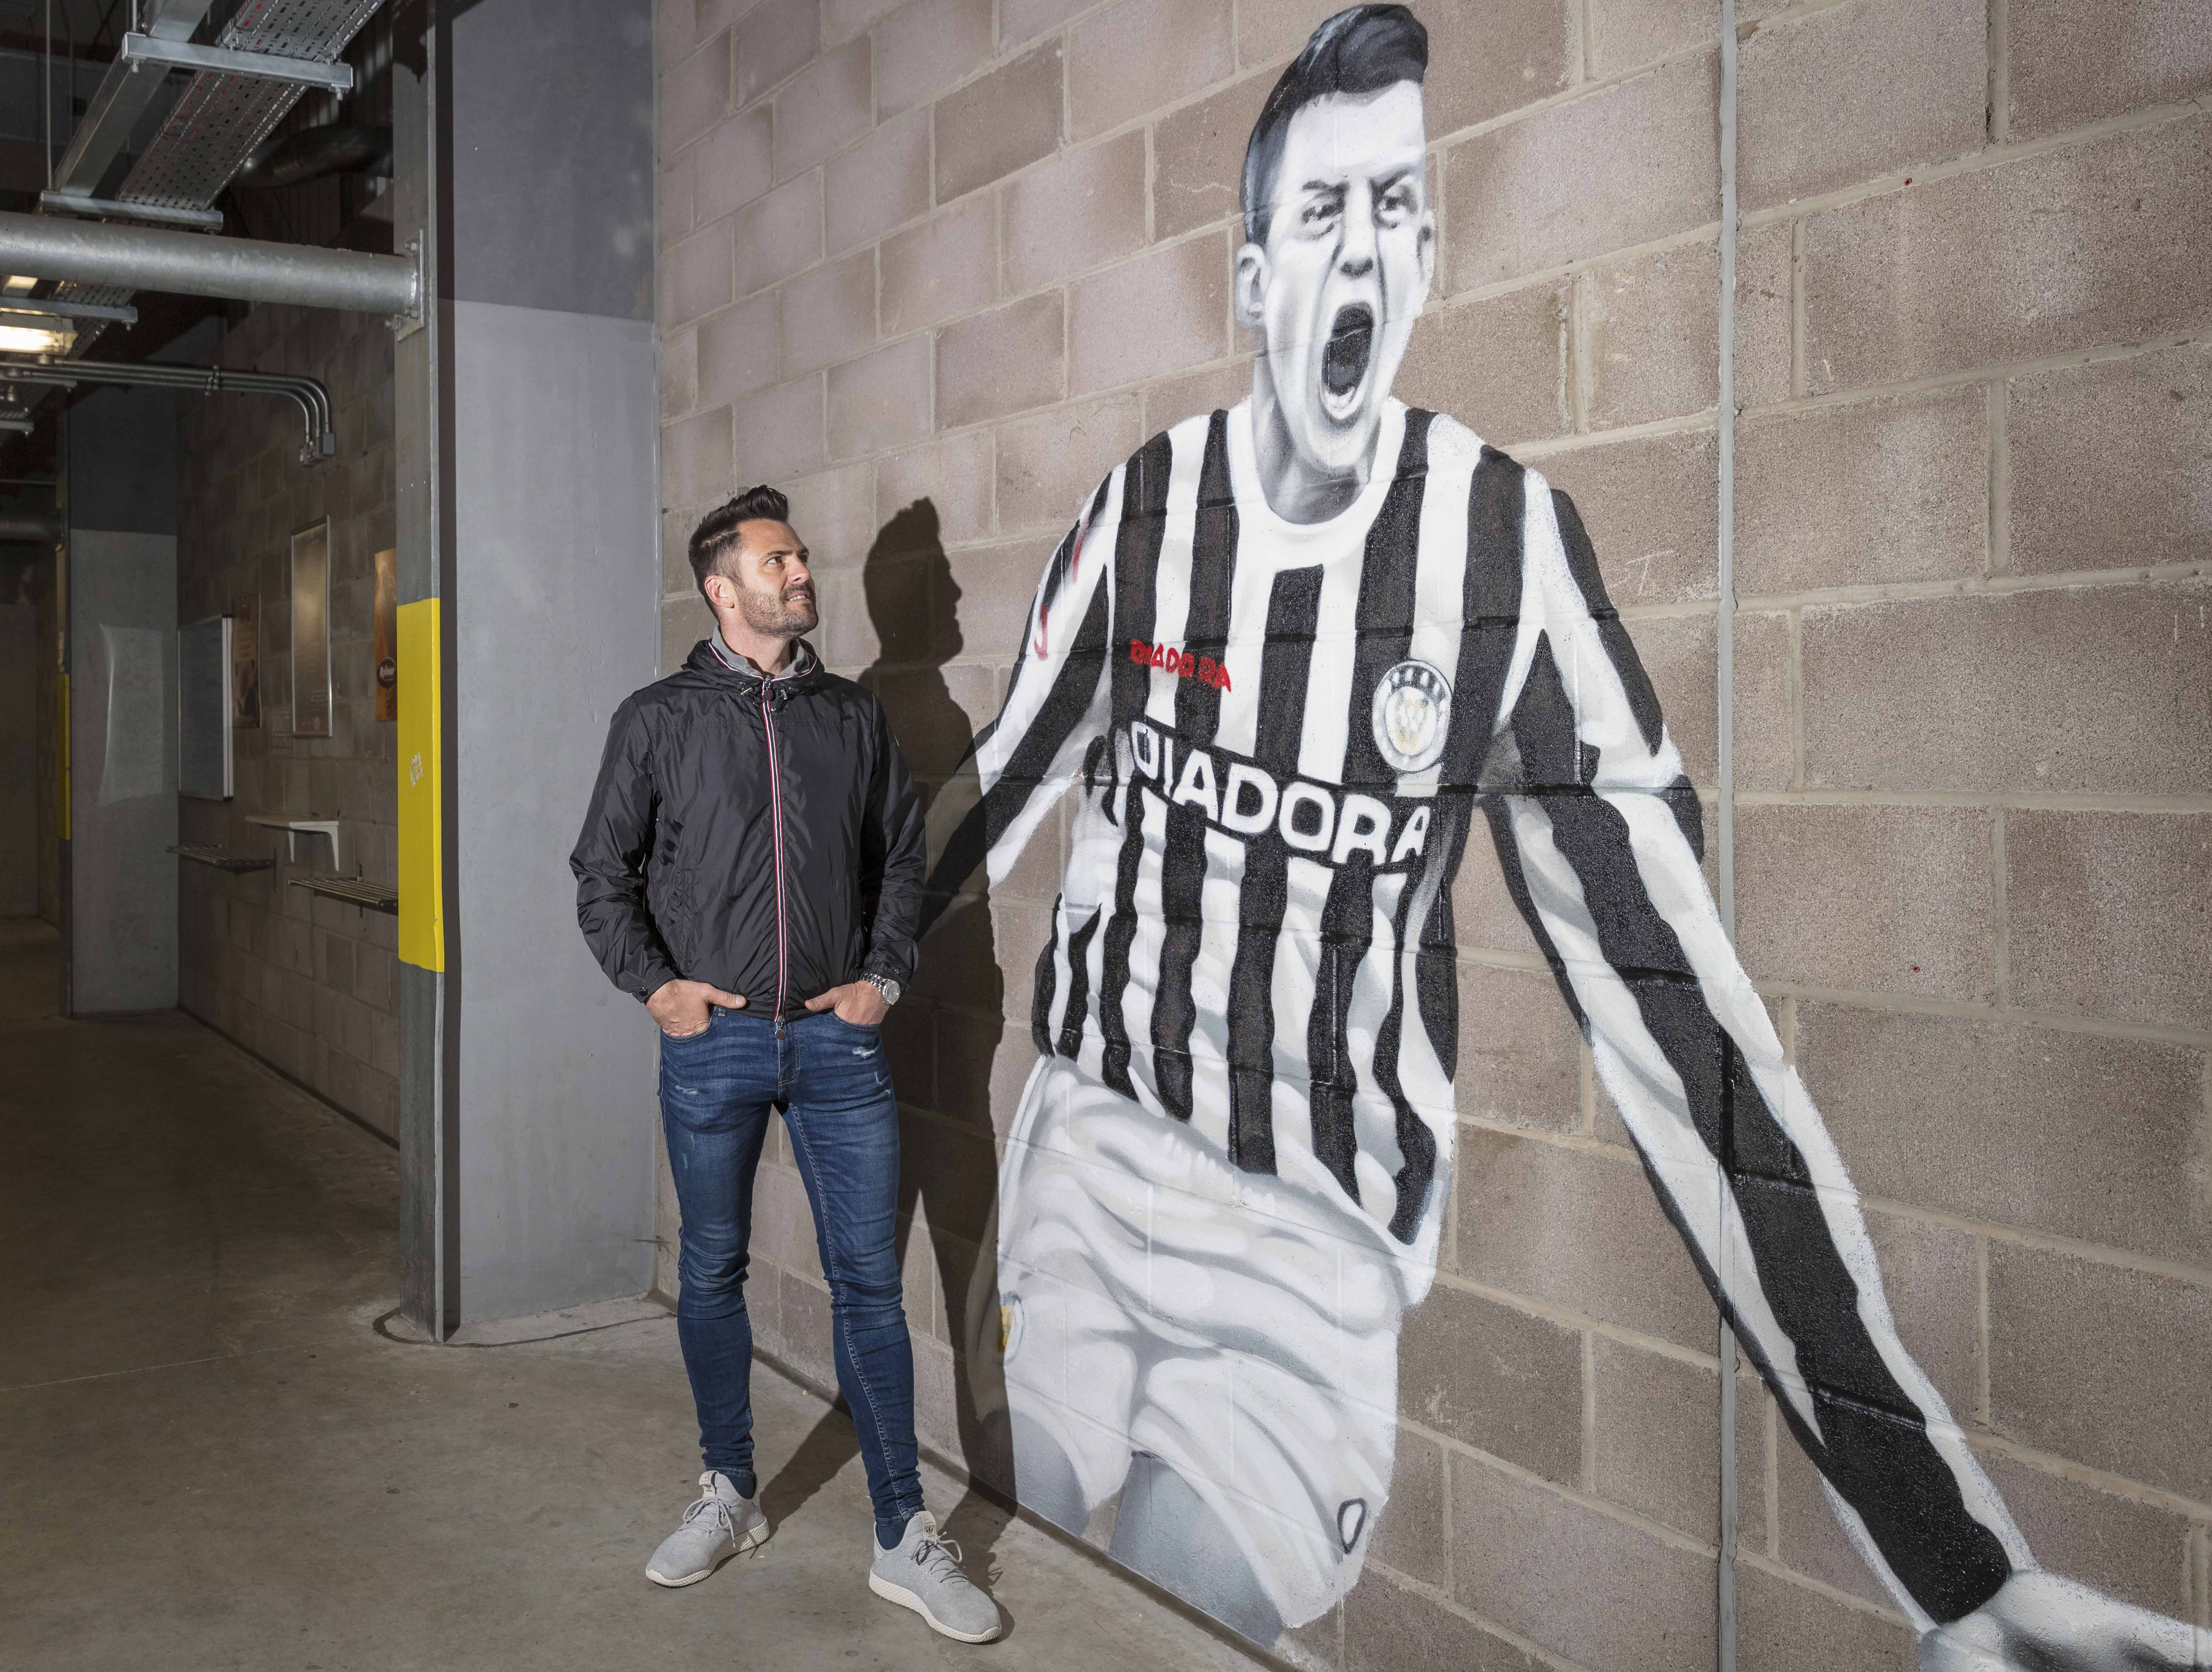 Thommo meets Thommo! Legend thanks SMISA for mural